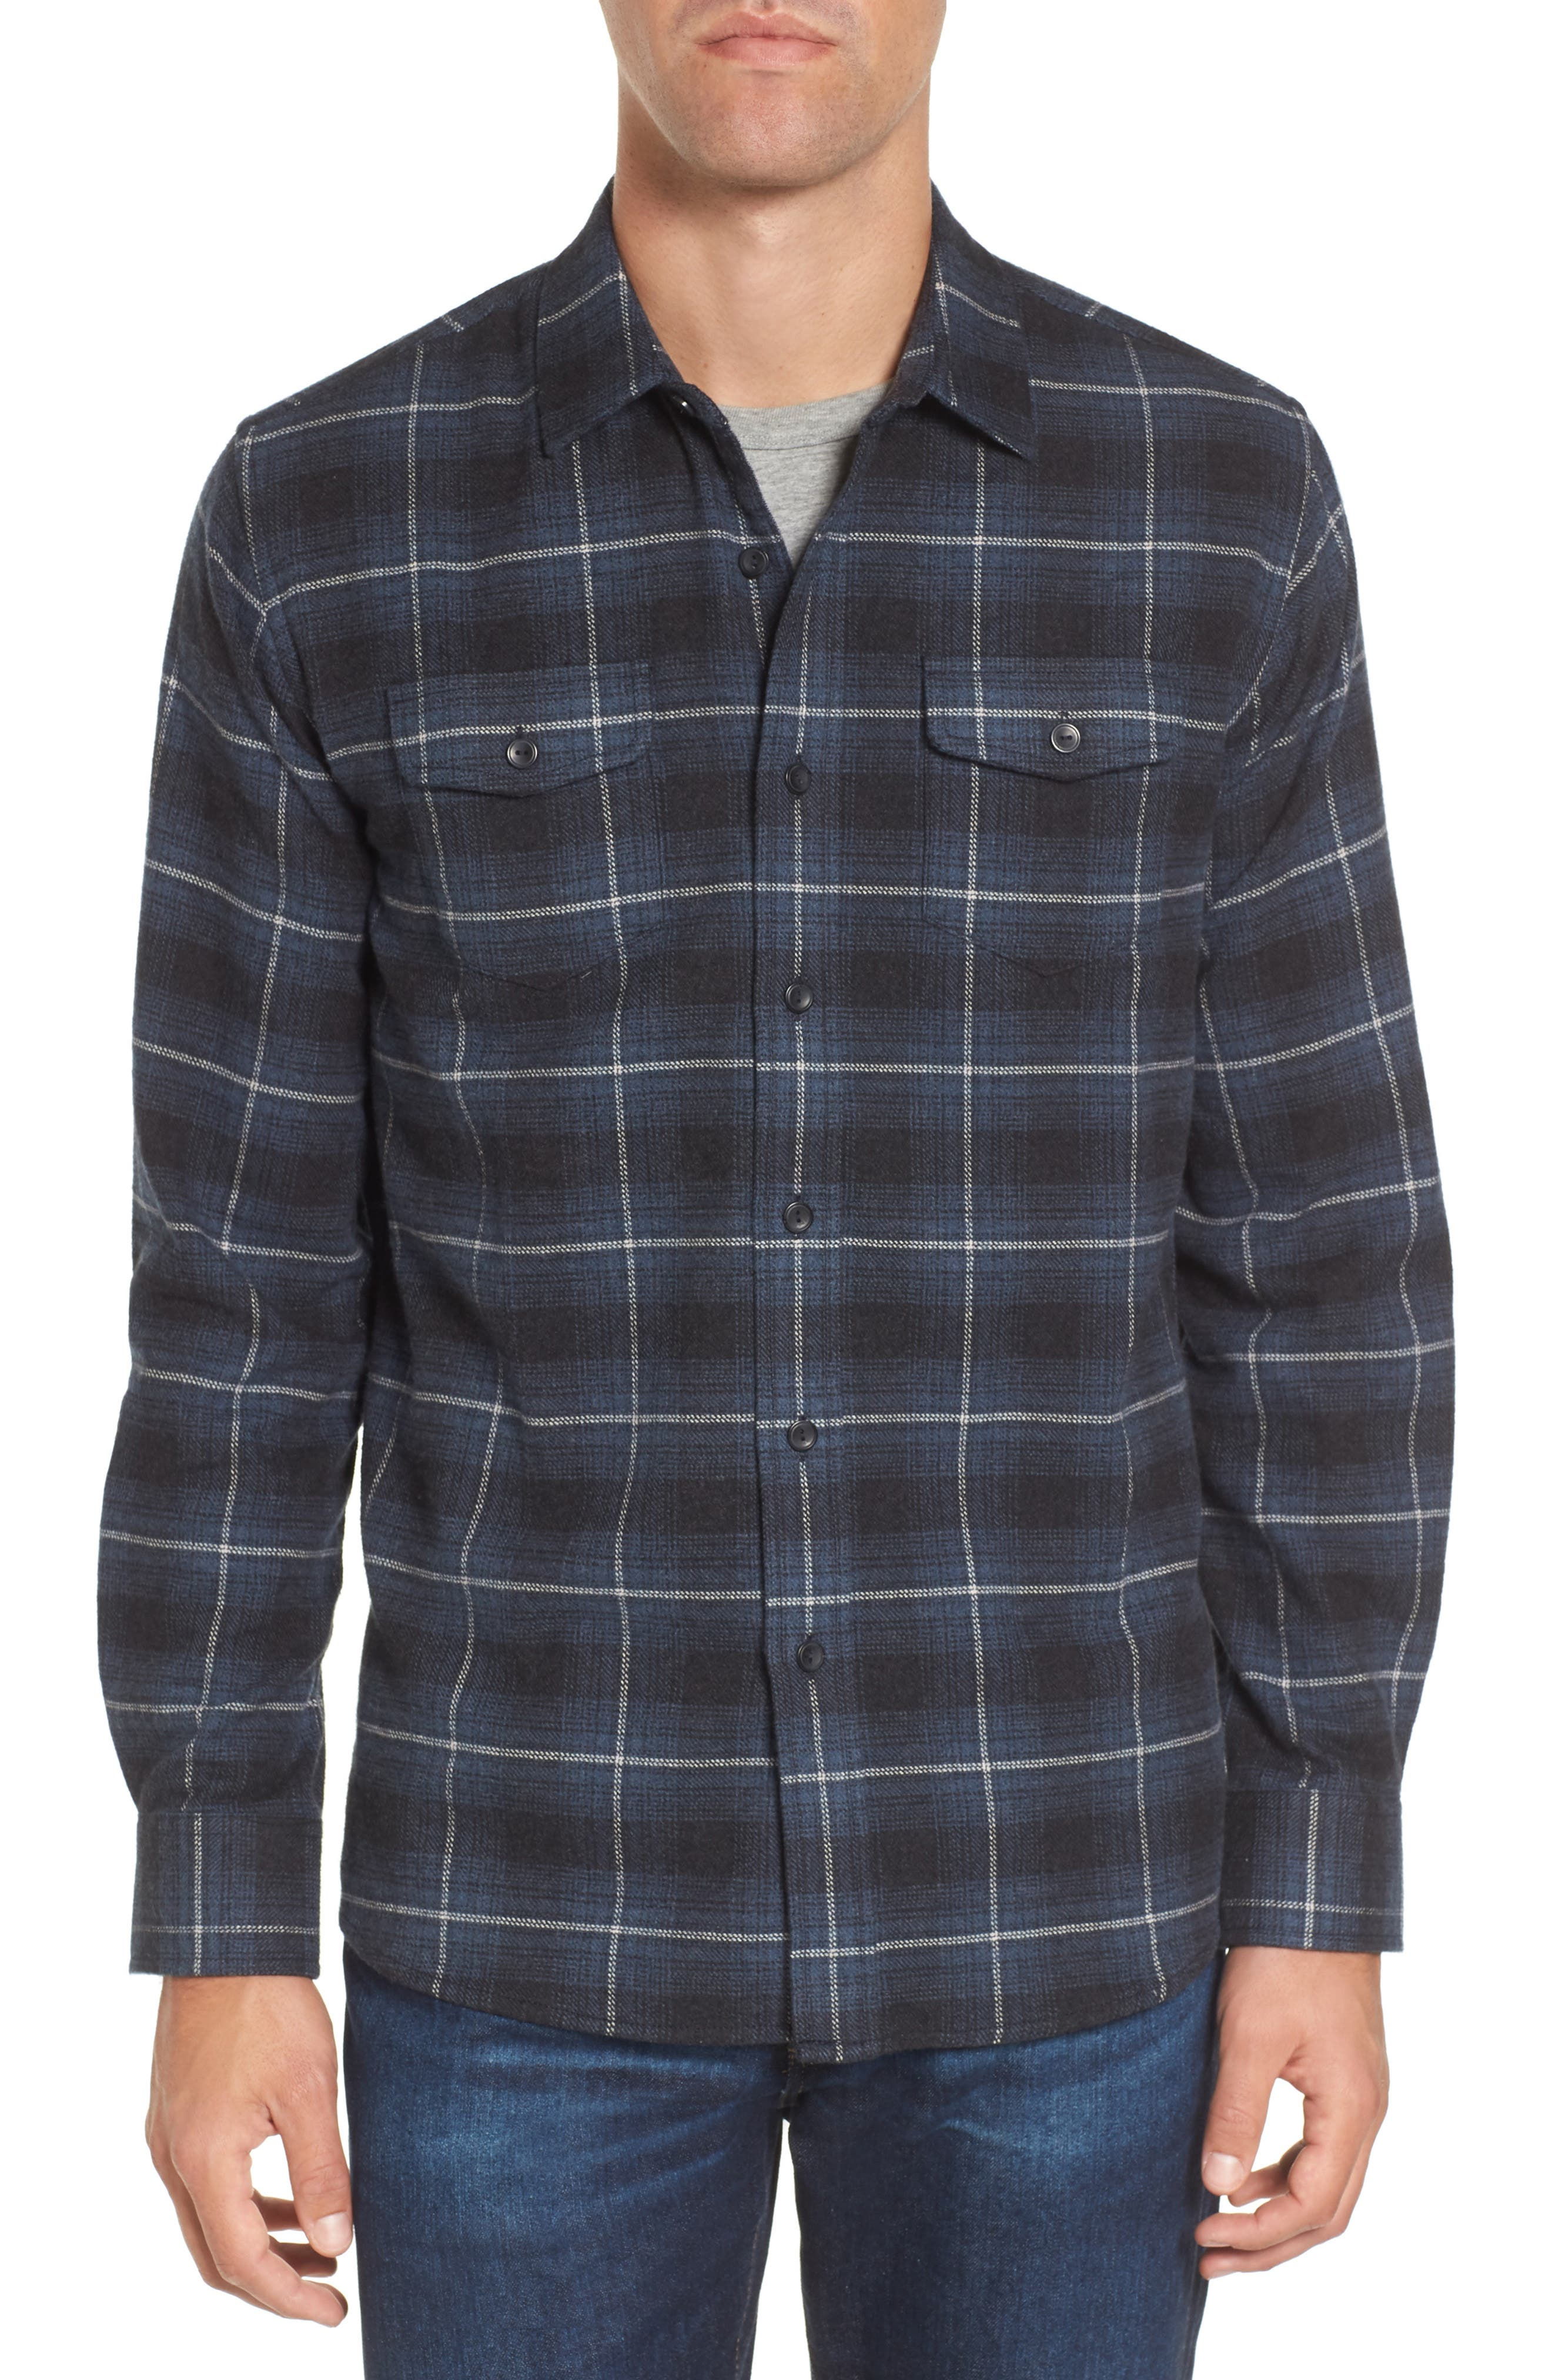 Clarke Heritage Flannel Shirt,                             Main thumbnail 1, color,                             Blue Charcoal